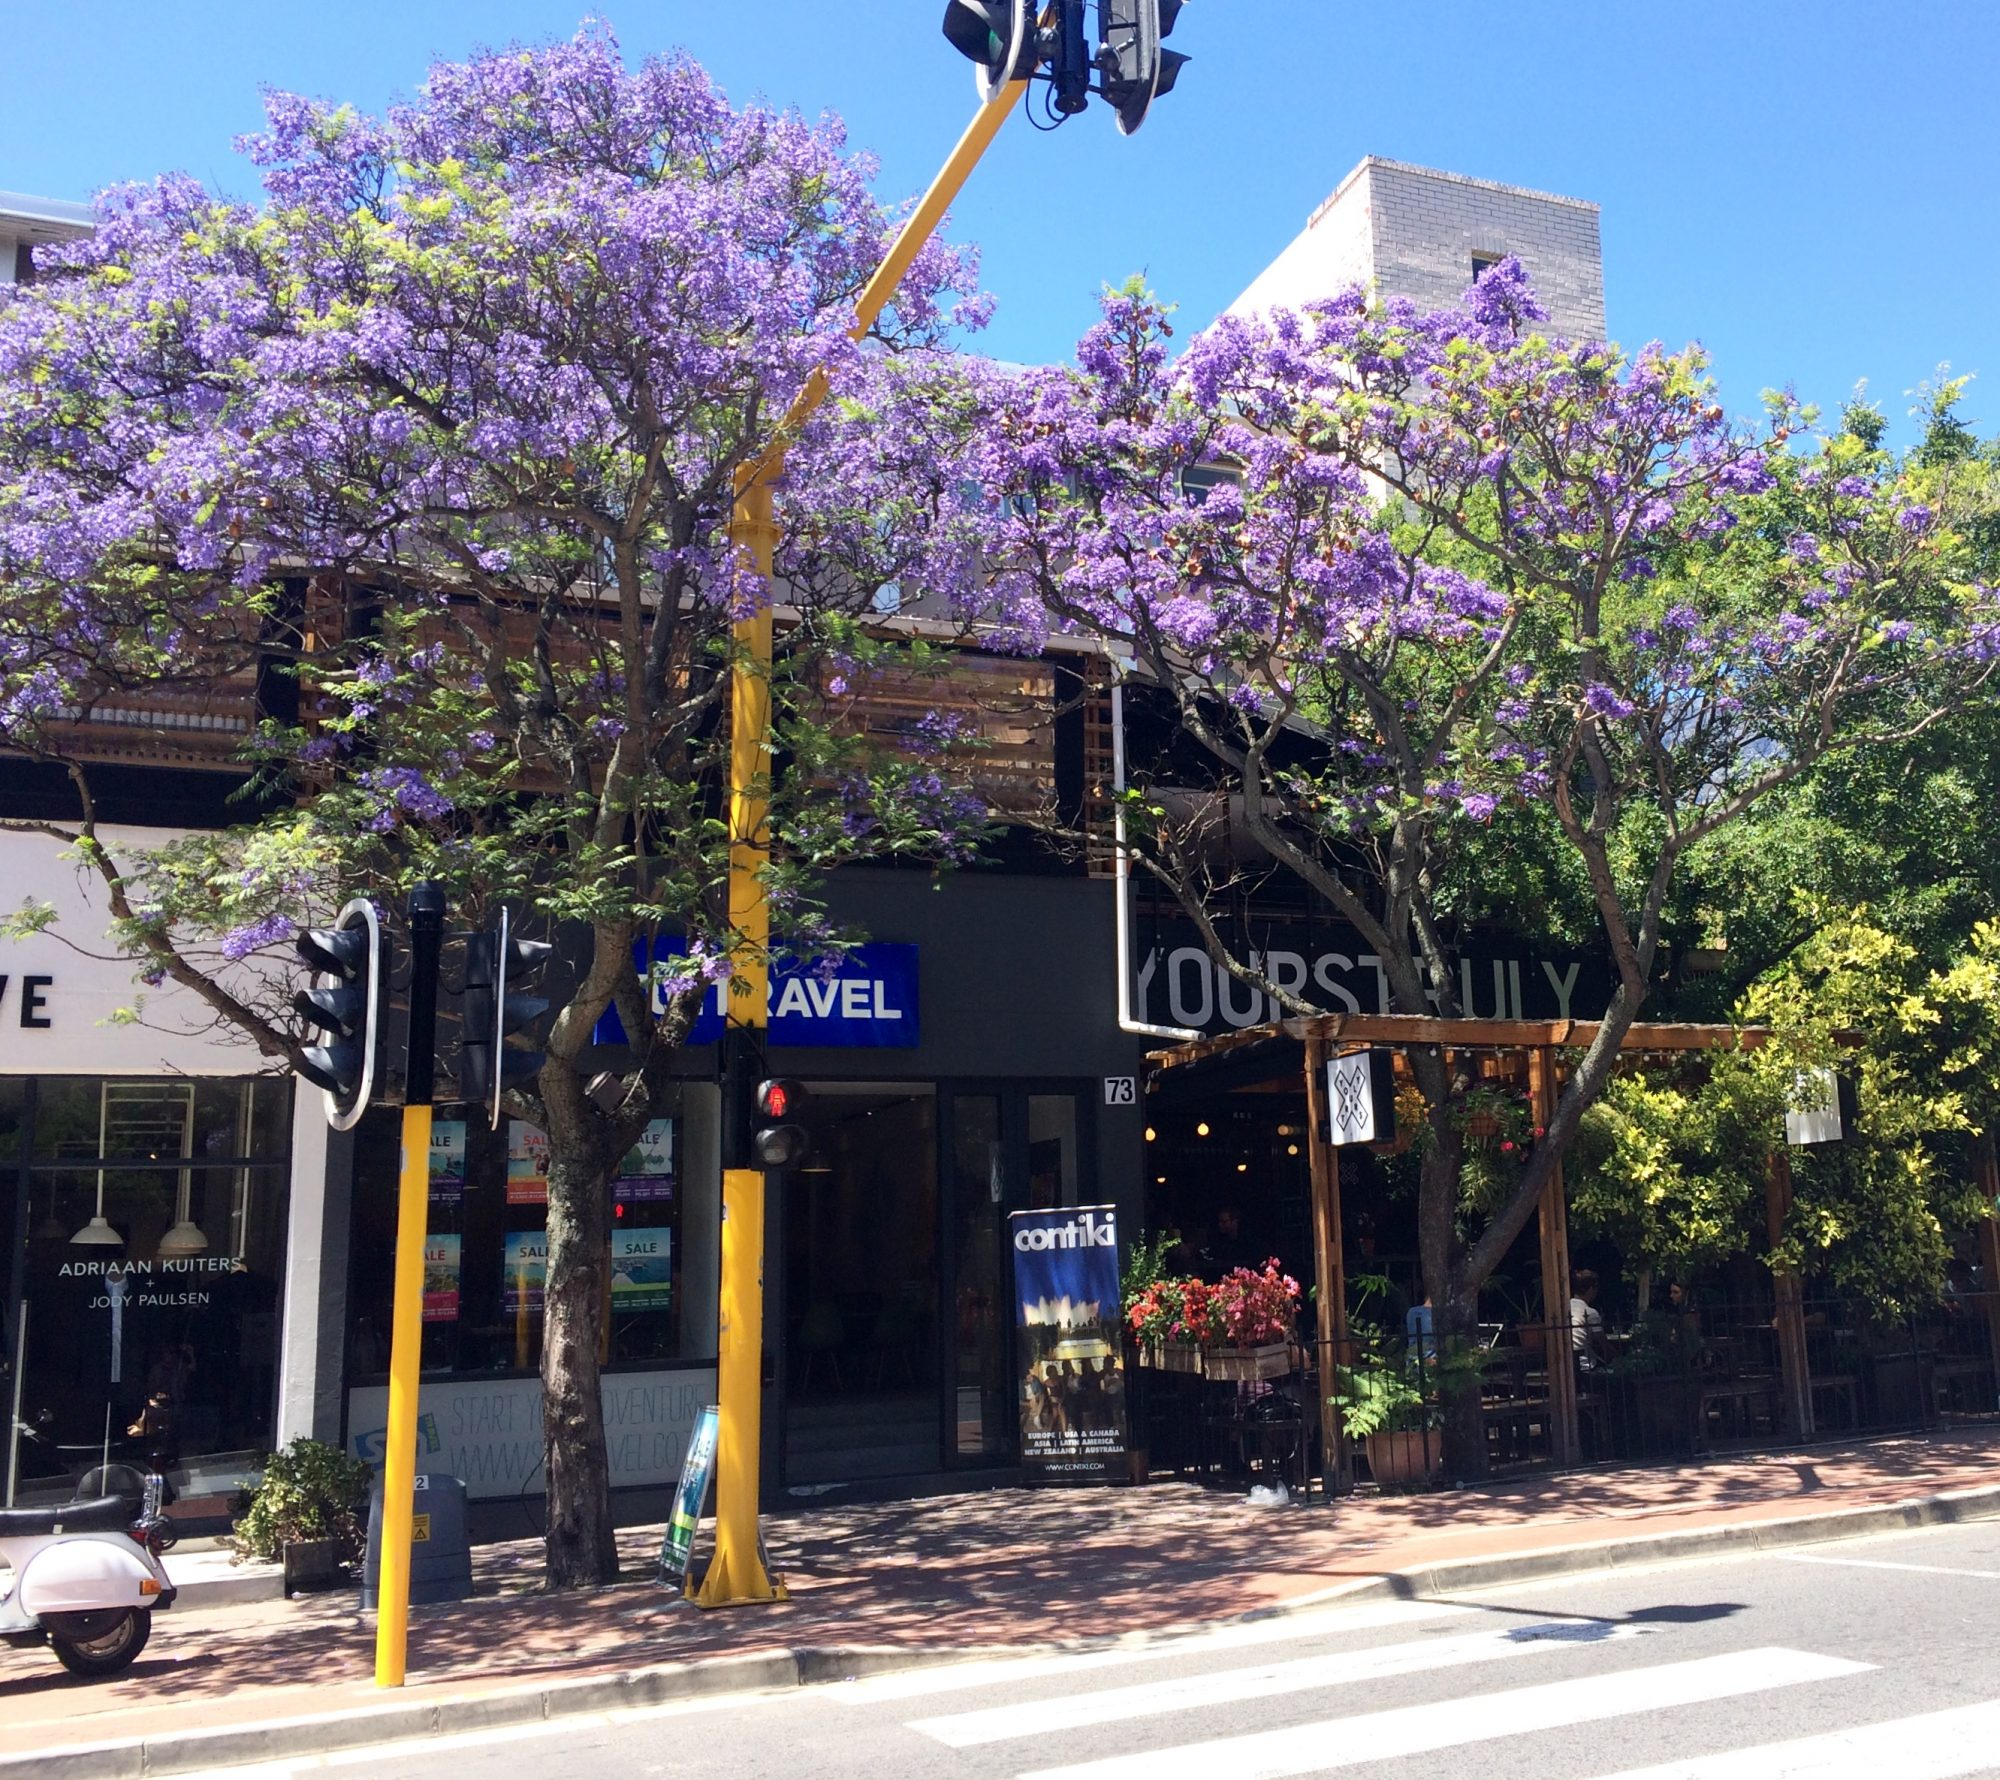 Cape Town love part I – explore Kloof Street